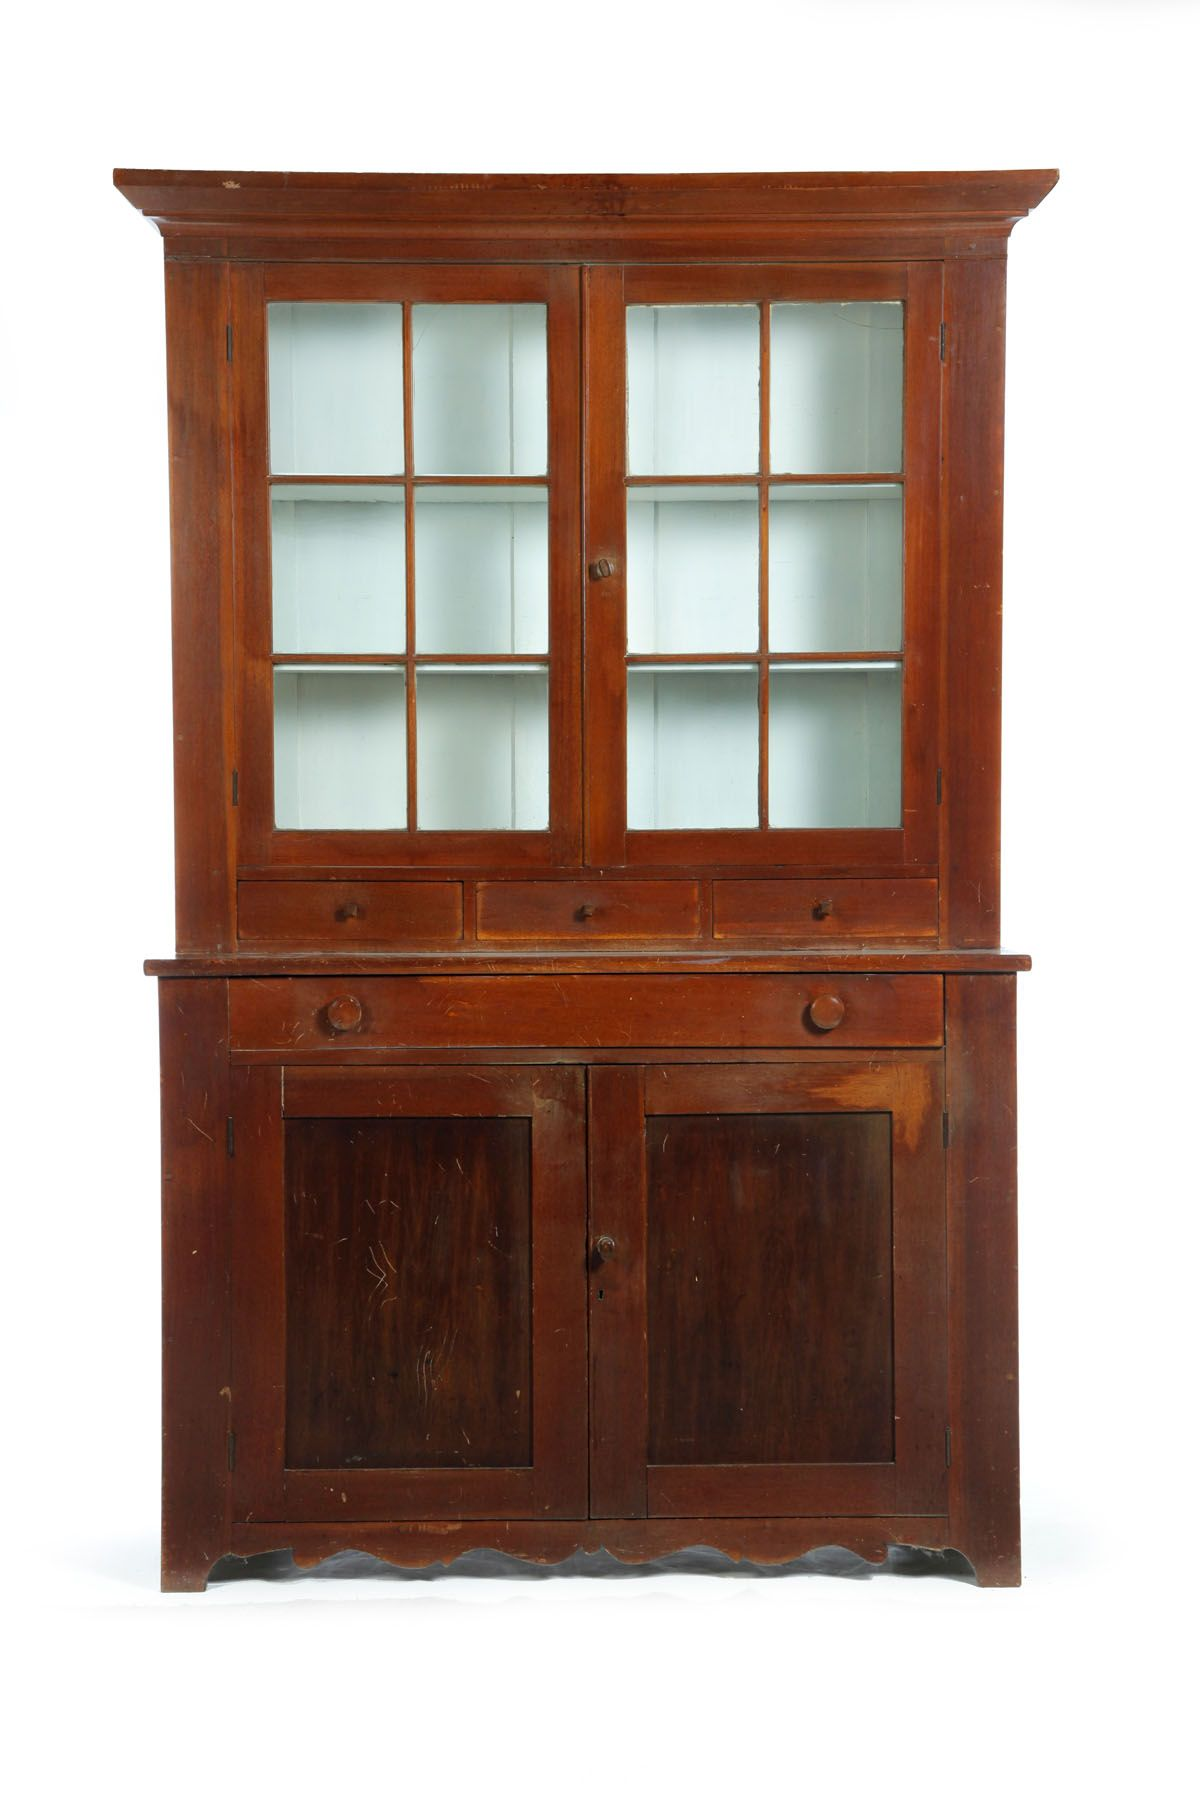 """STEPBACK CUPBOARD. Zoar, Ohio, mid 19th century, walnut and poplar. Two-piece cupboard: the upper section with two six-pane doors and three drawers with their original diamond pulls, the lower section with one drawer and two paneled doors, all on a shaped base. 81.5""""h. 54""""w. 20""""d. Estimate $2,500-5,000 garths.com"""